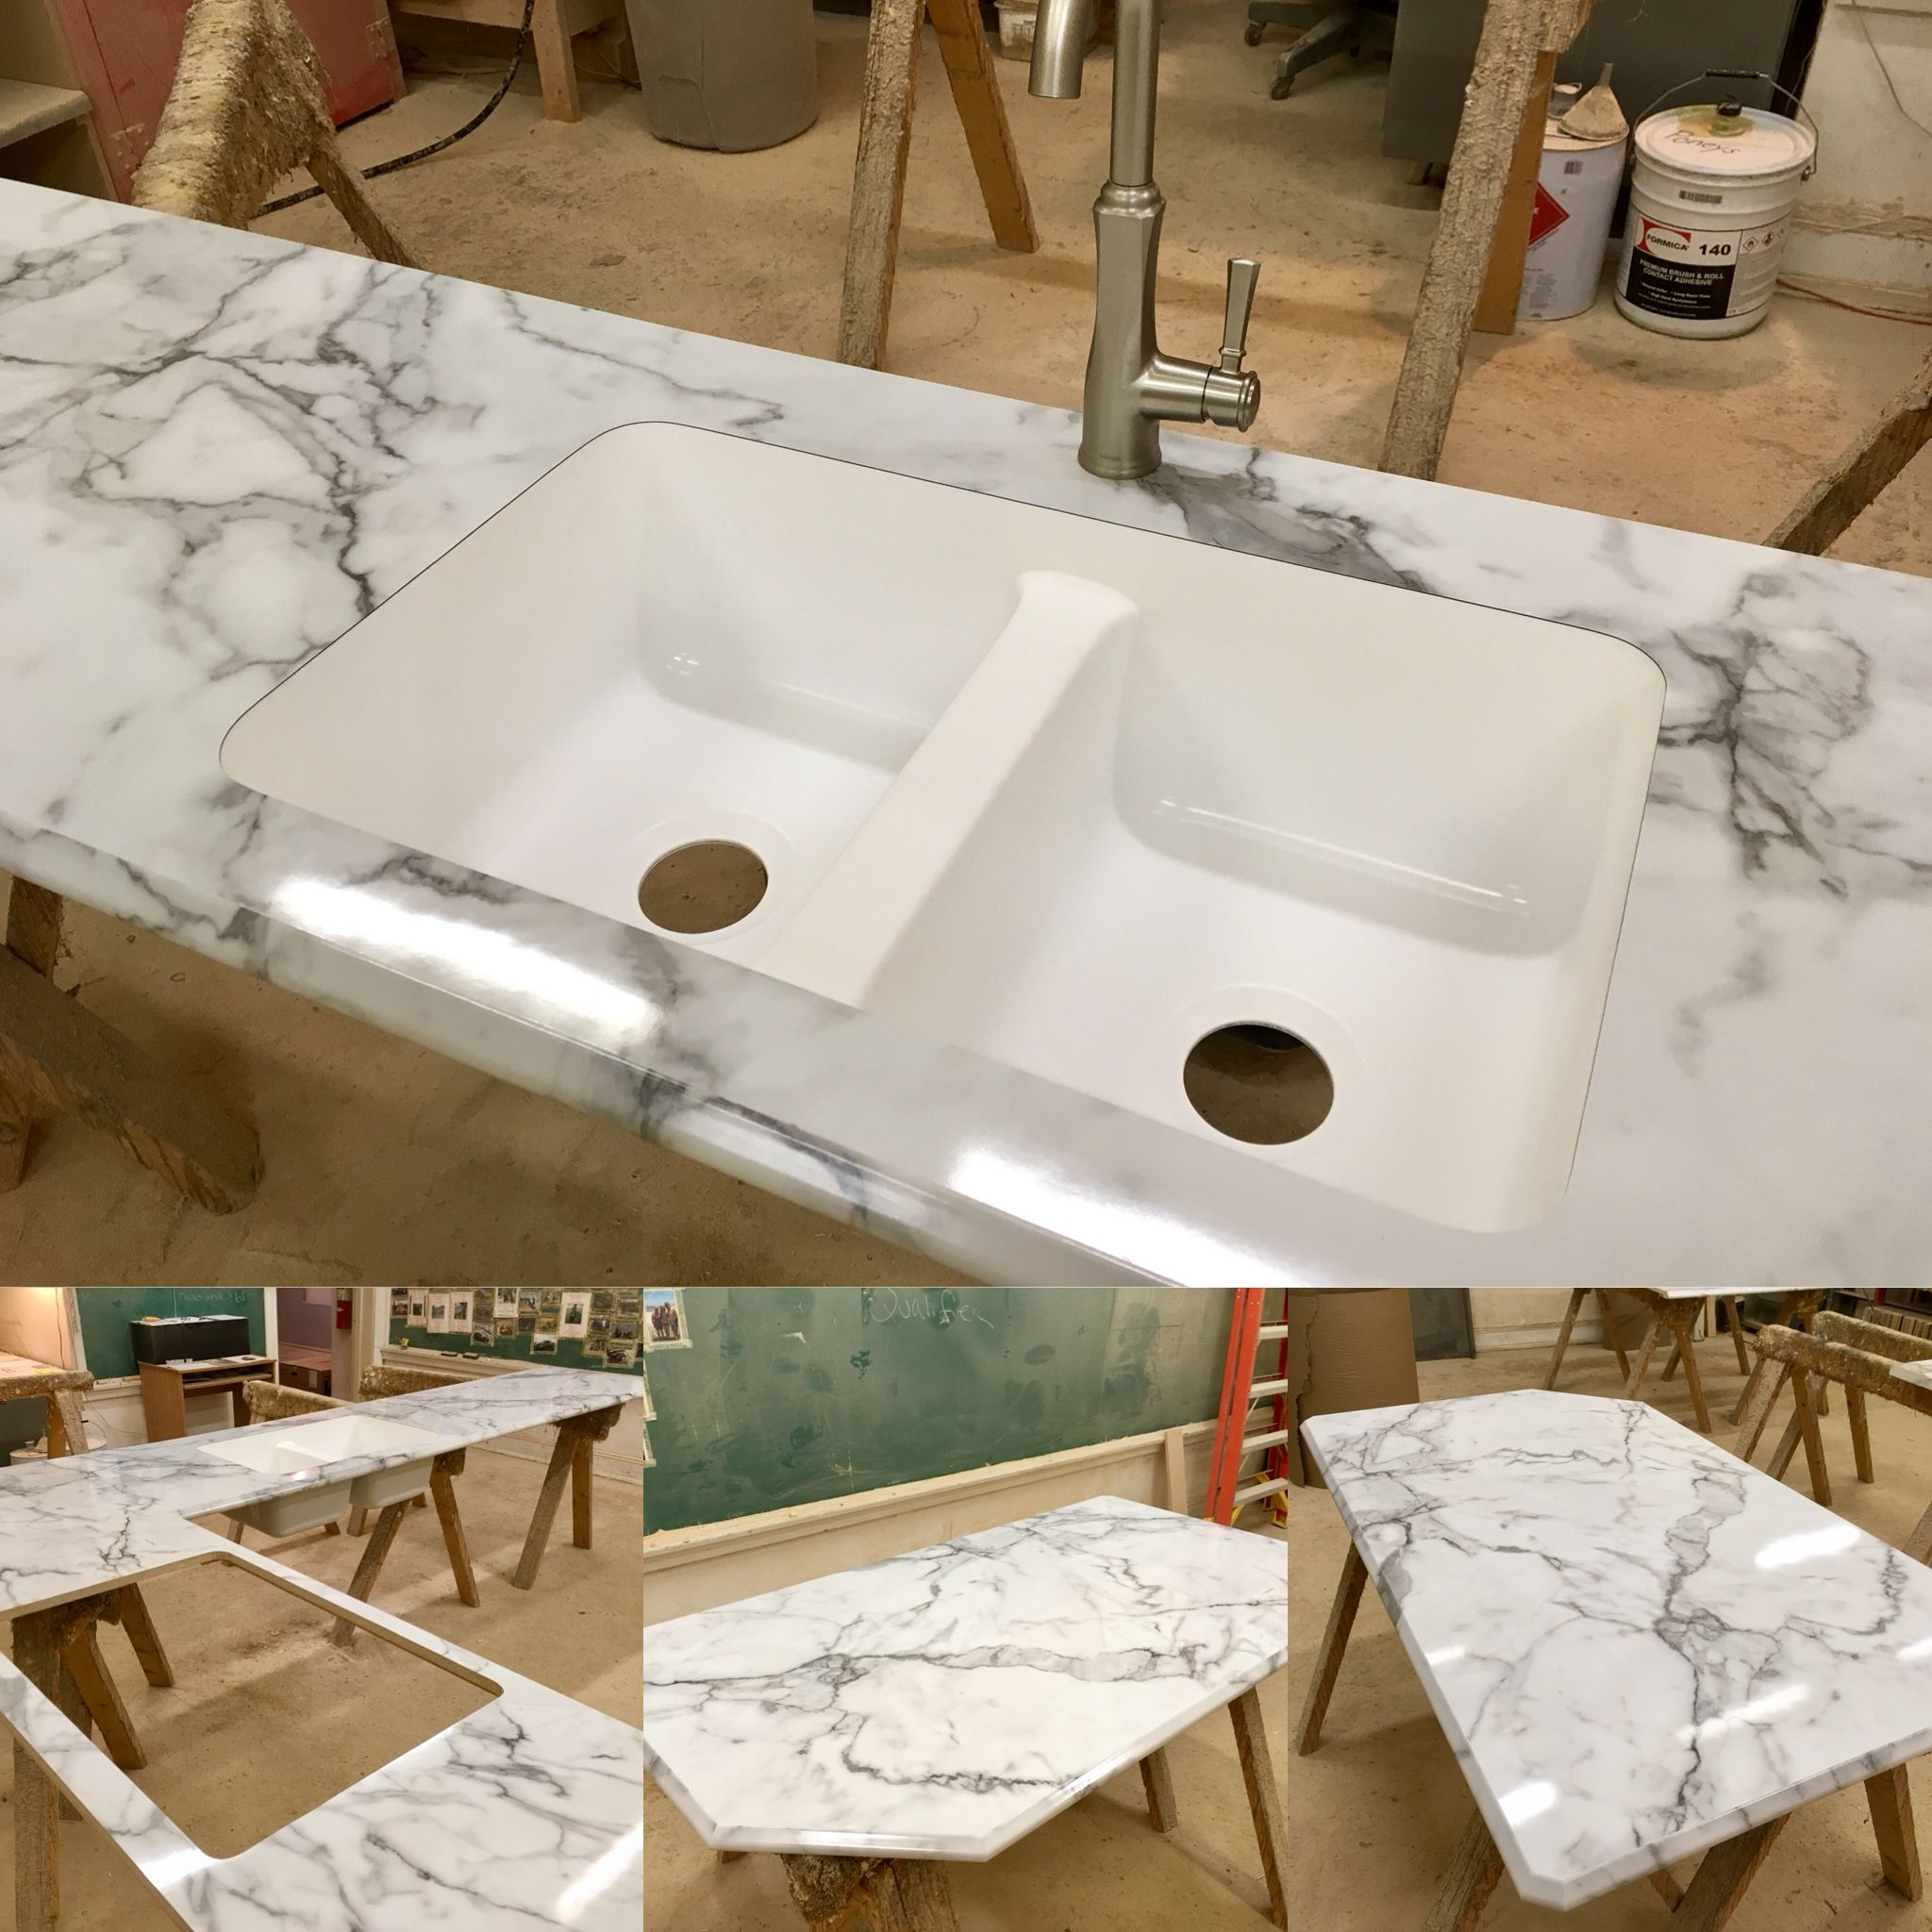 Another Poney S Custom Laminate Countertop Completed This Is Calcutta Marble In A Gloss Finish Ogee Ideal Ed Calcutta Marble Countertops Laminate Countertops